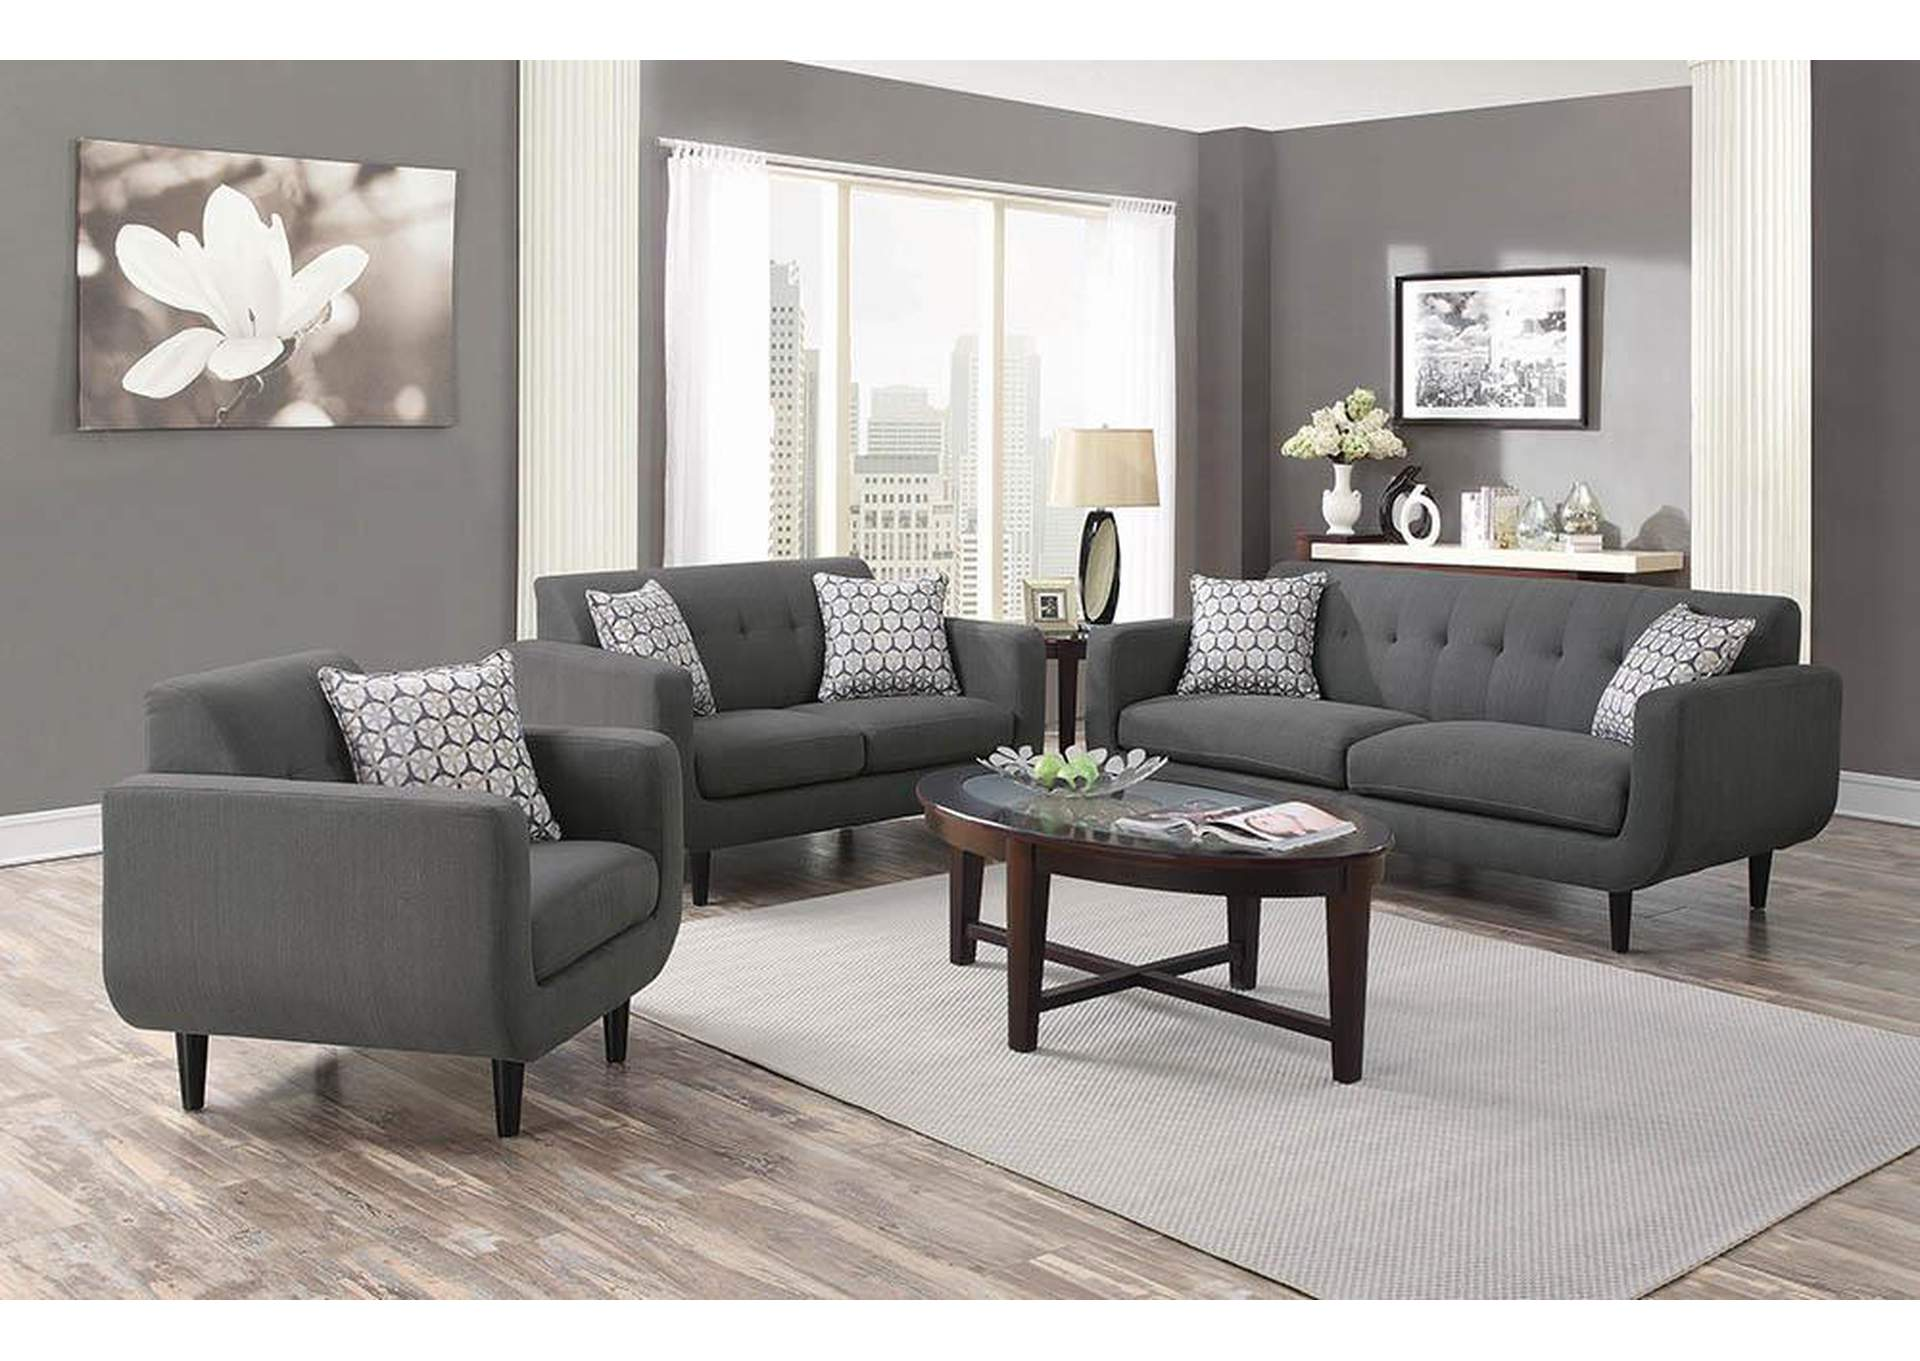 Stansall Chocolate Grey Sofa,Coaster Furniture